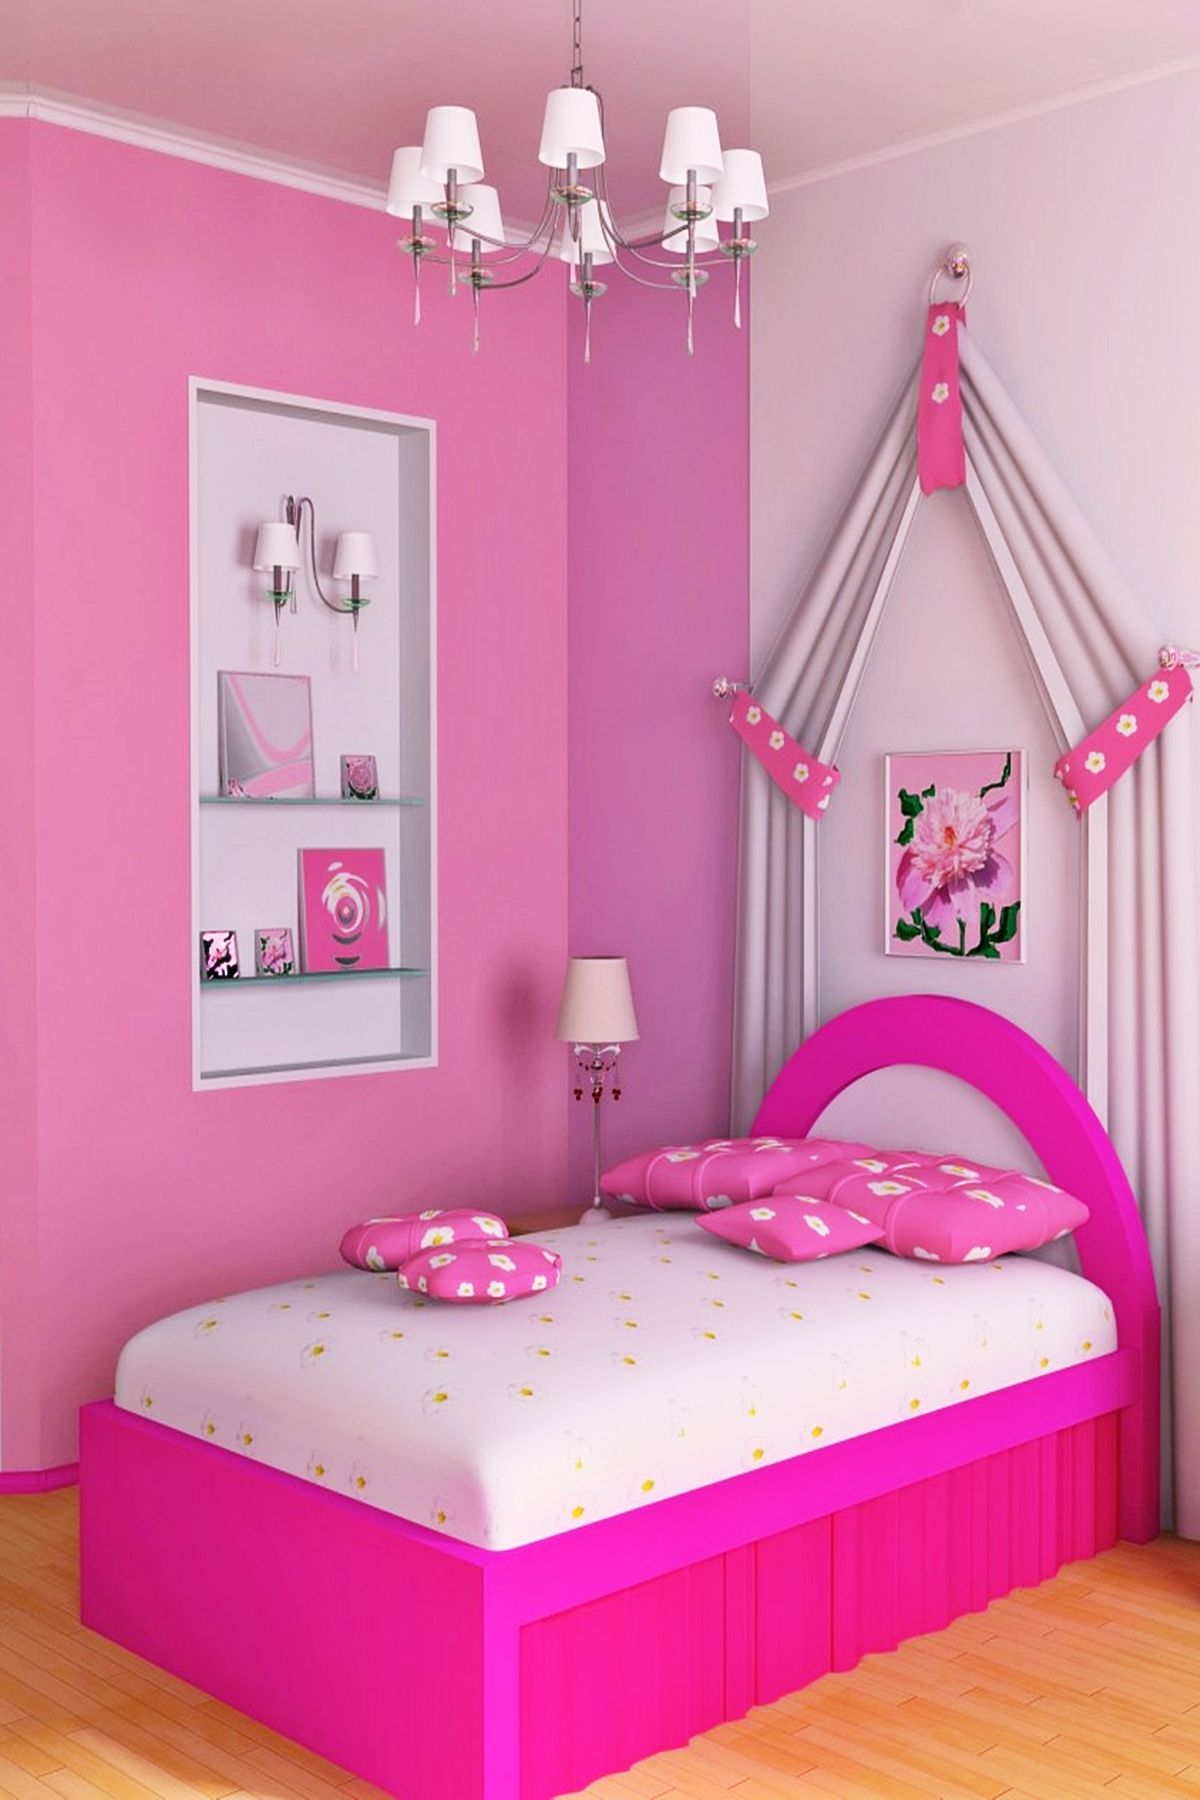 Pink Bedroom Ideas Little Girl 2020 Trends 2020 Girl Bedroom